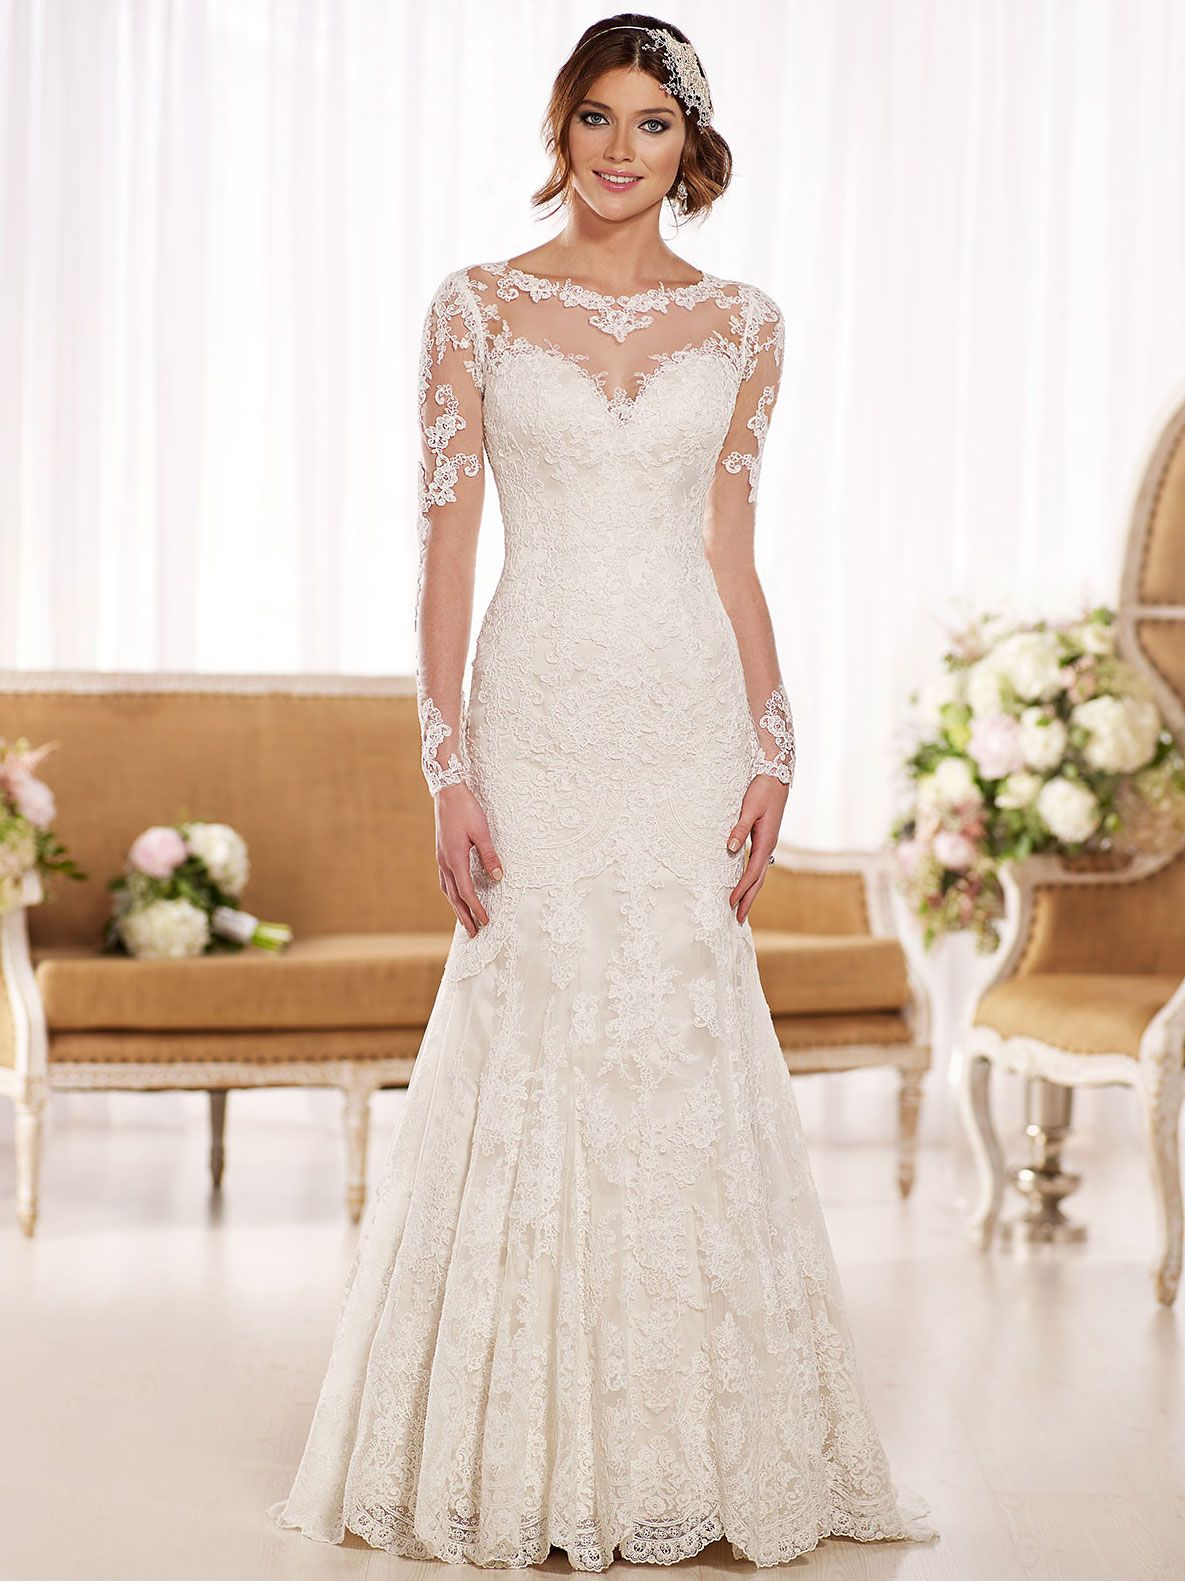 Essense wedding gown d1863 dimitradesigns wedding illusion bateau neck lace adorned fit flared lace wedding dress with long sleeves ombrellifo Choice Image